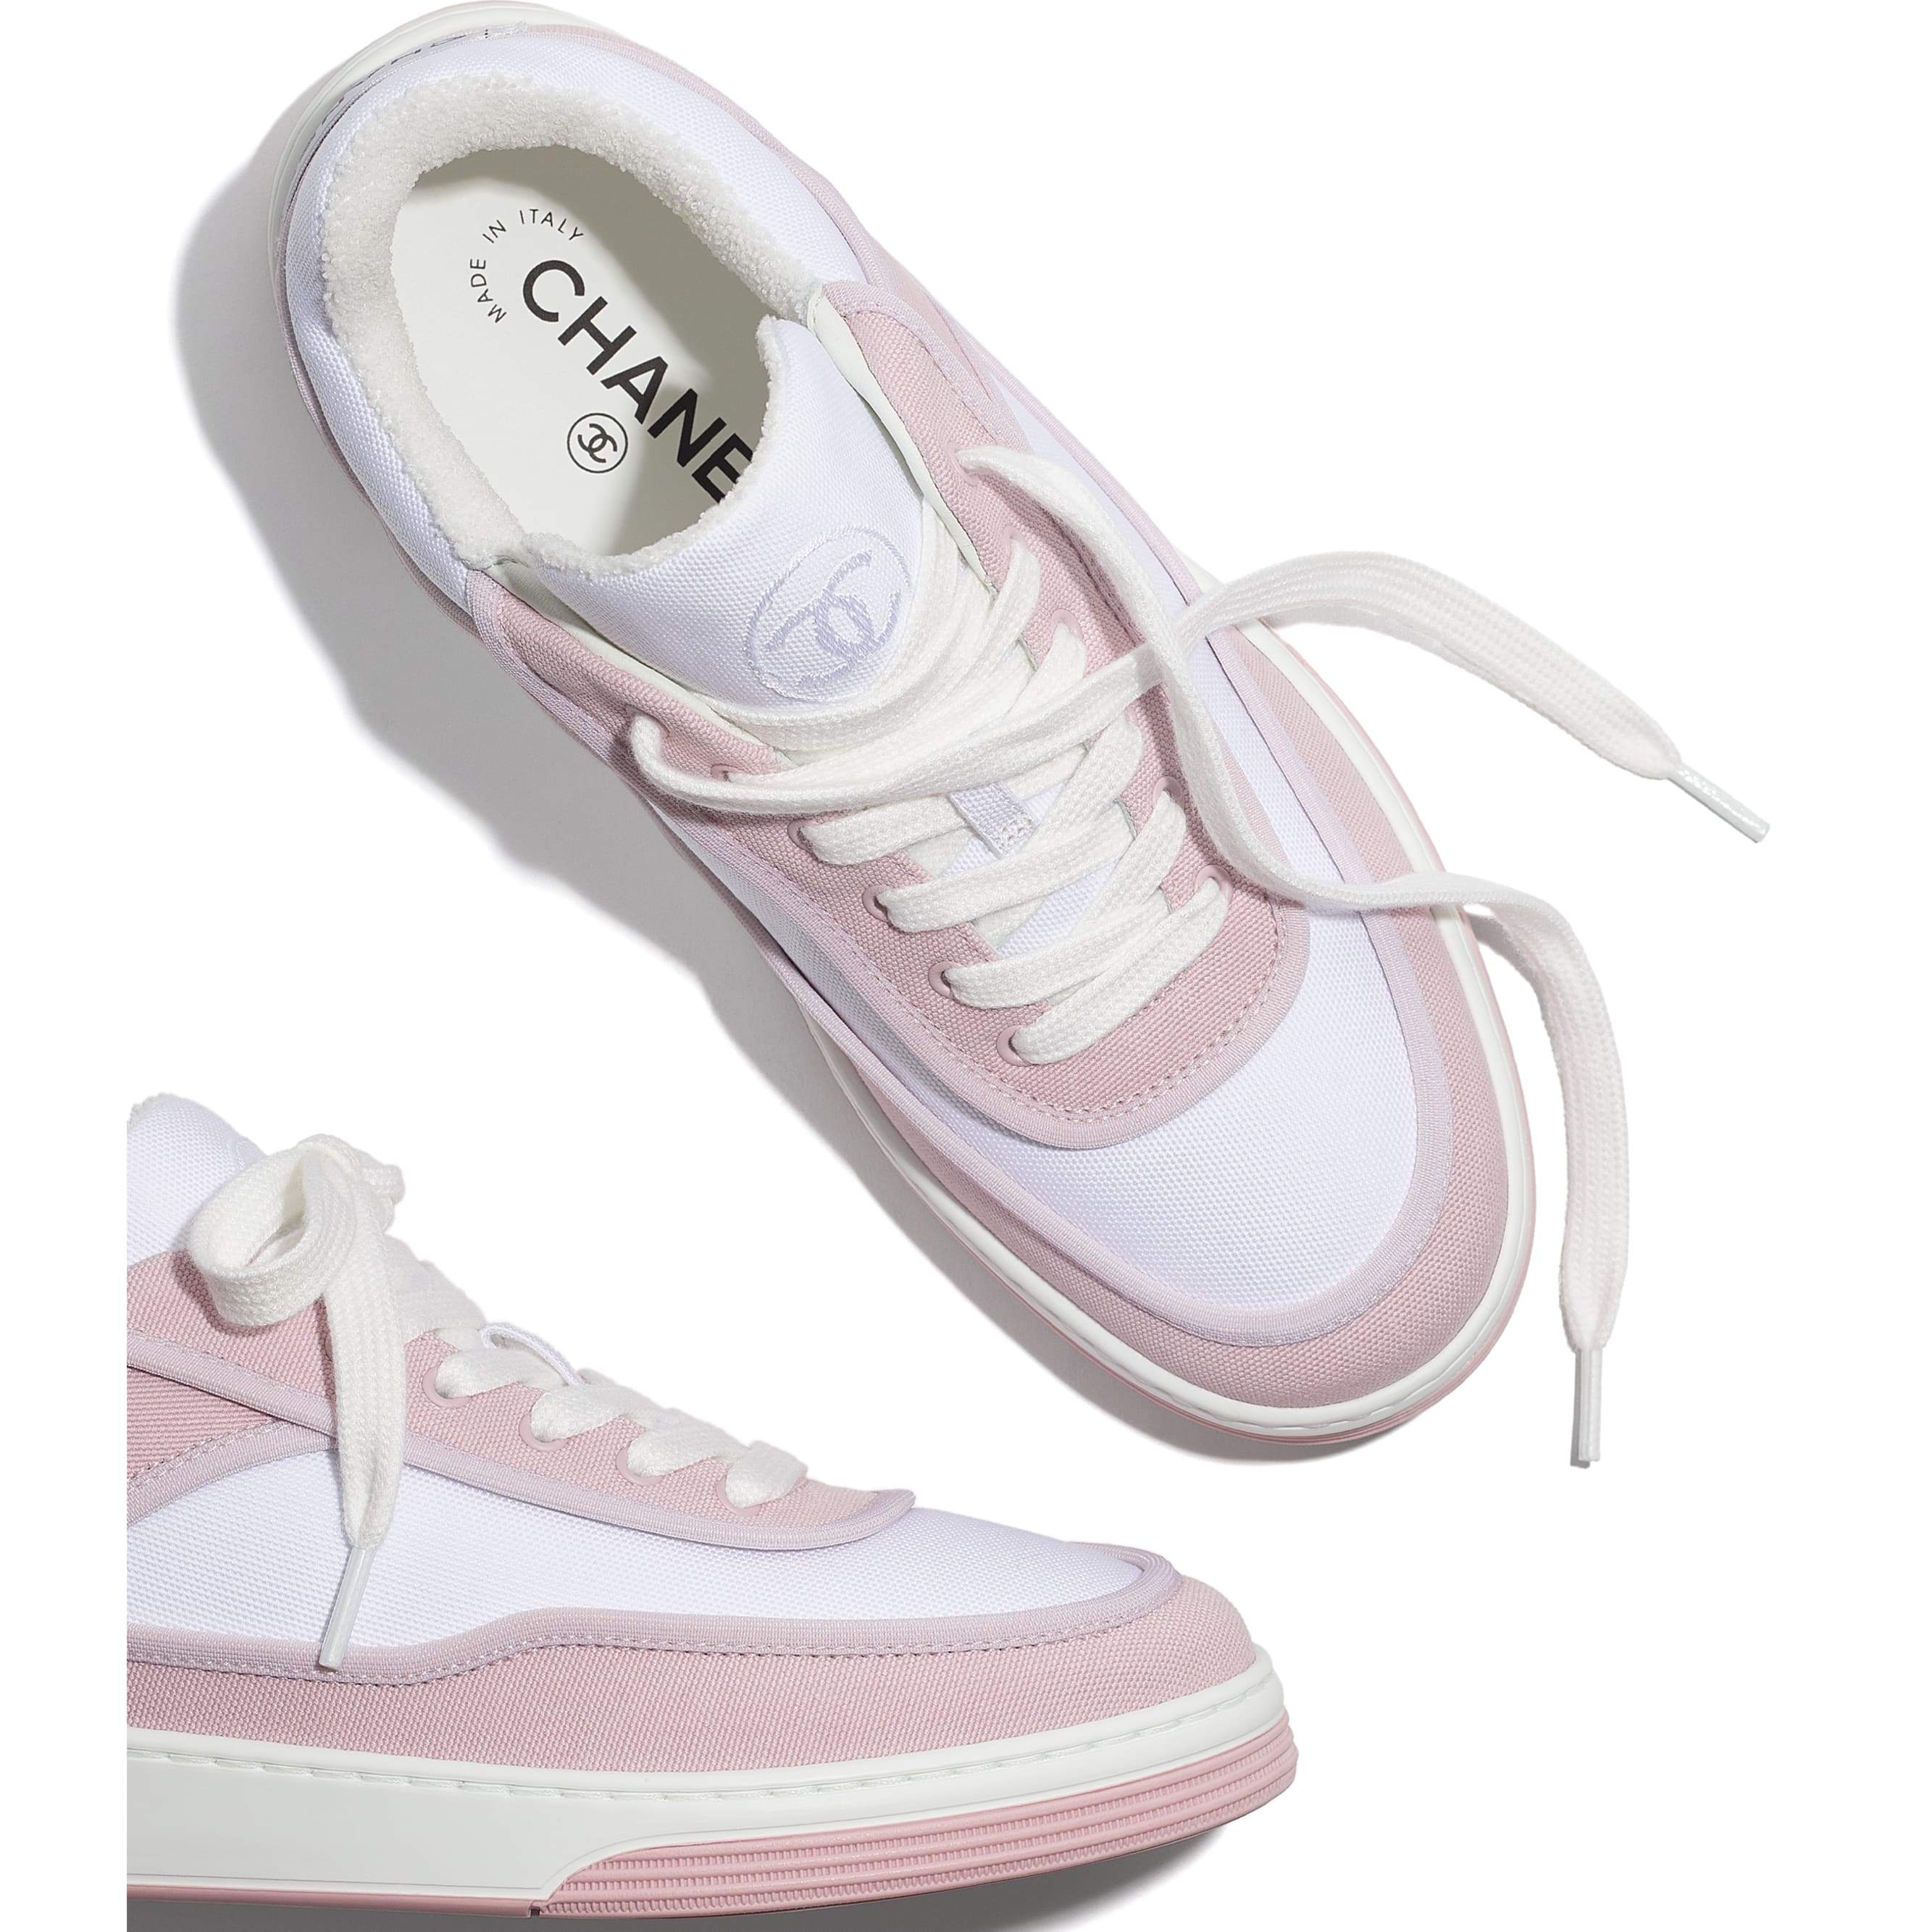 Trainers - Pink & White - Fabric - CHANEL - Extra view - see standard sized version